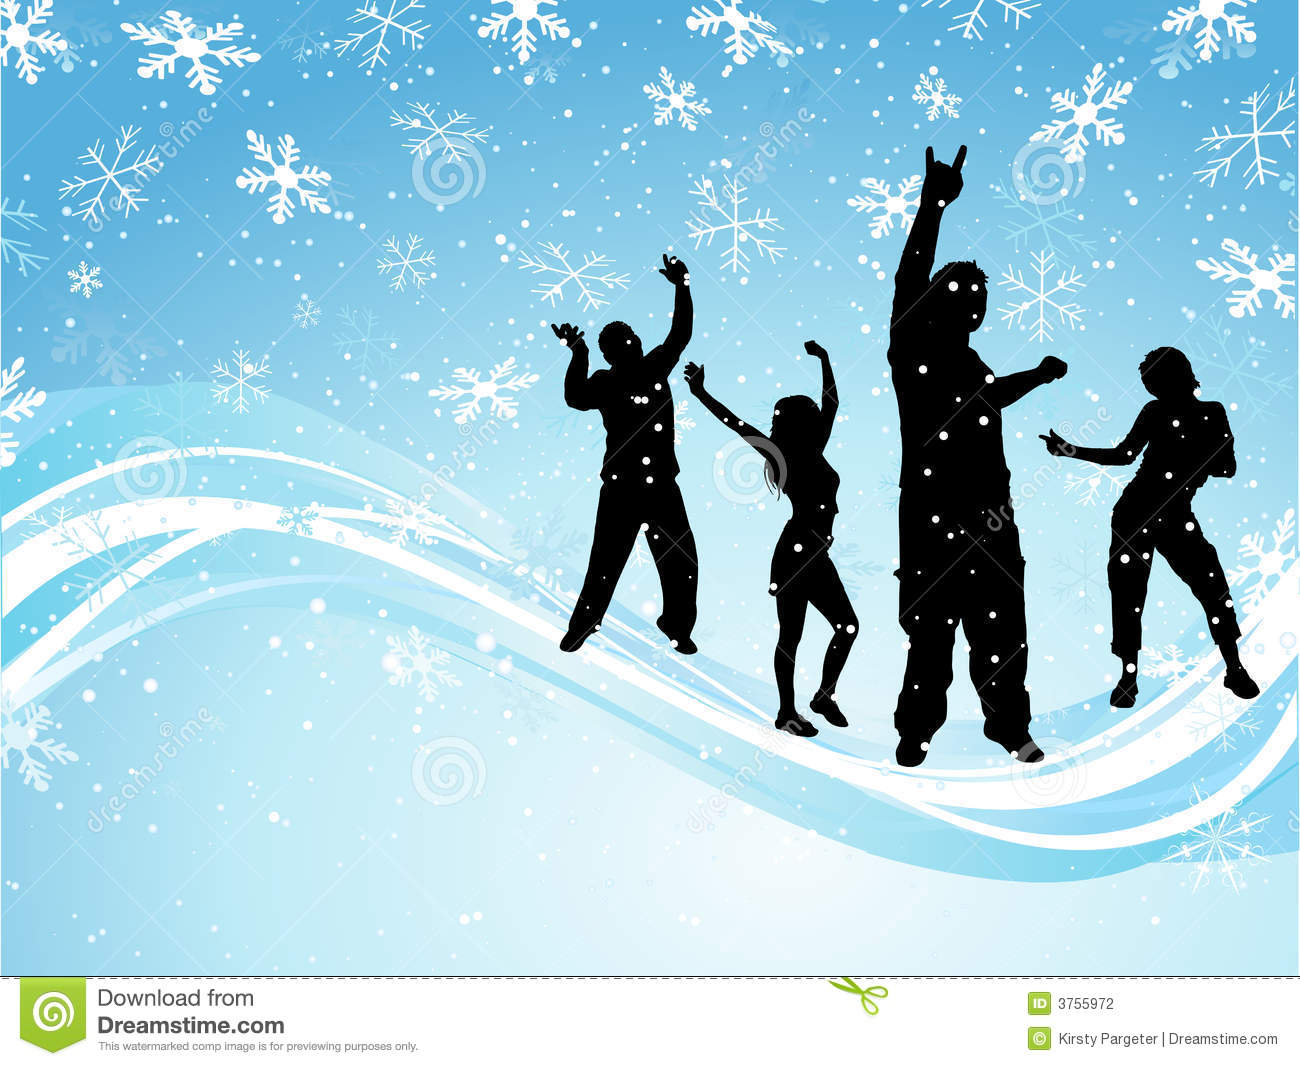 Silhouettes of people dancing on snowflake background.